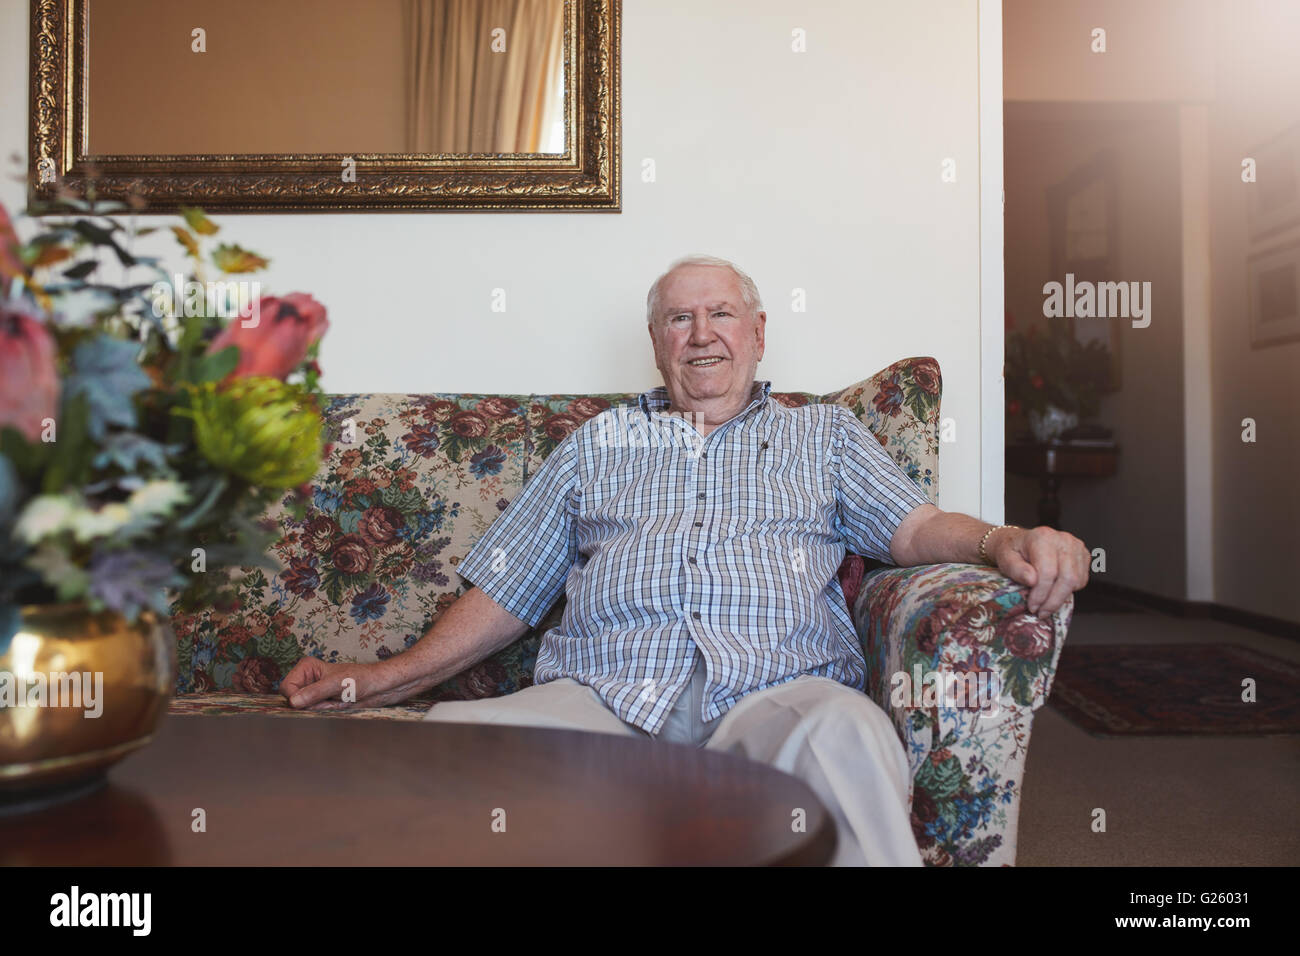 Indoor shot of happy senior man sitting relaxed on a couch at old age home. He is looking at camera and smiling. - Stock Image